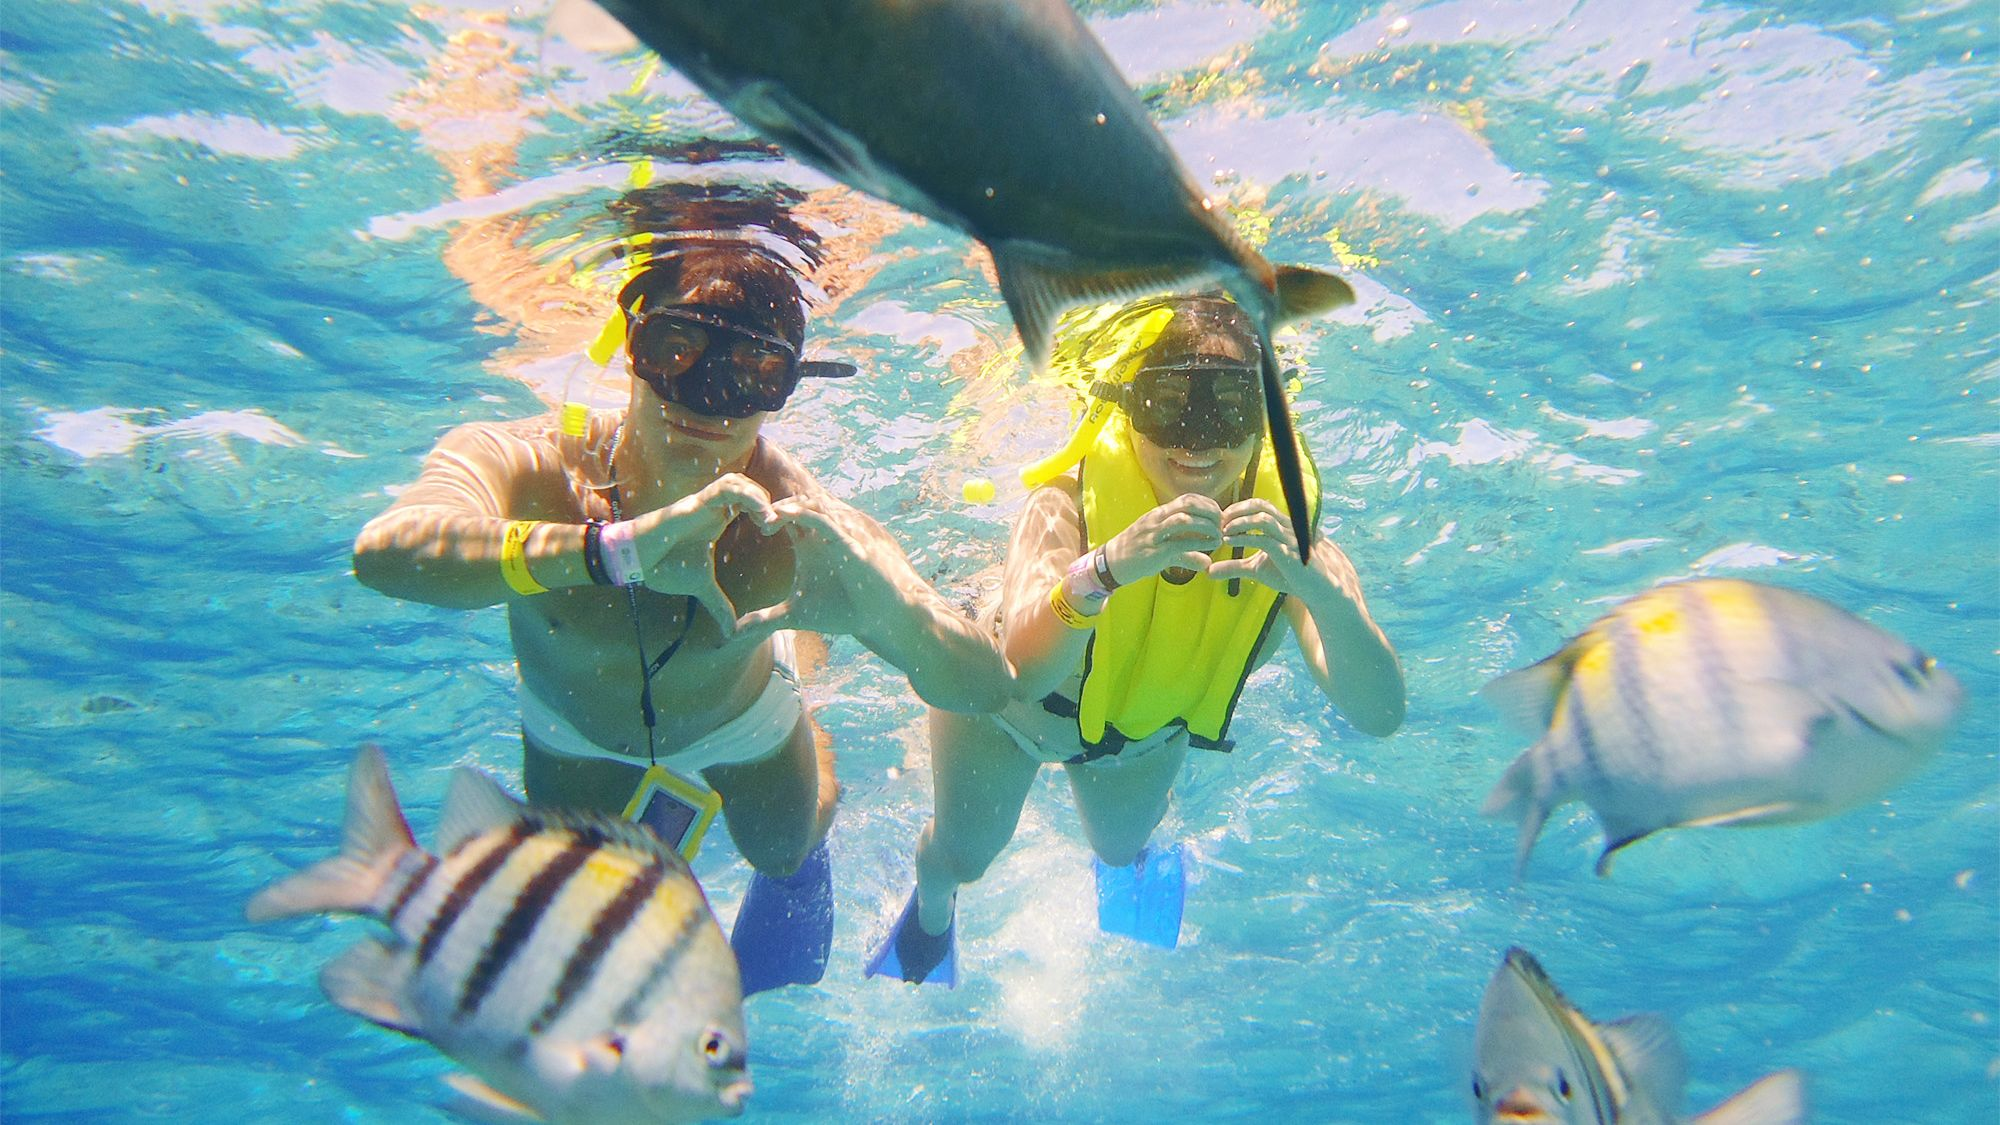 Snorkelers swimming with fish in Cozumel